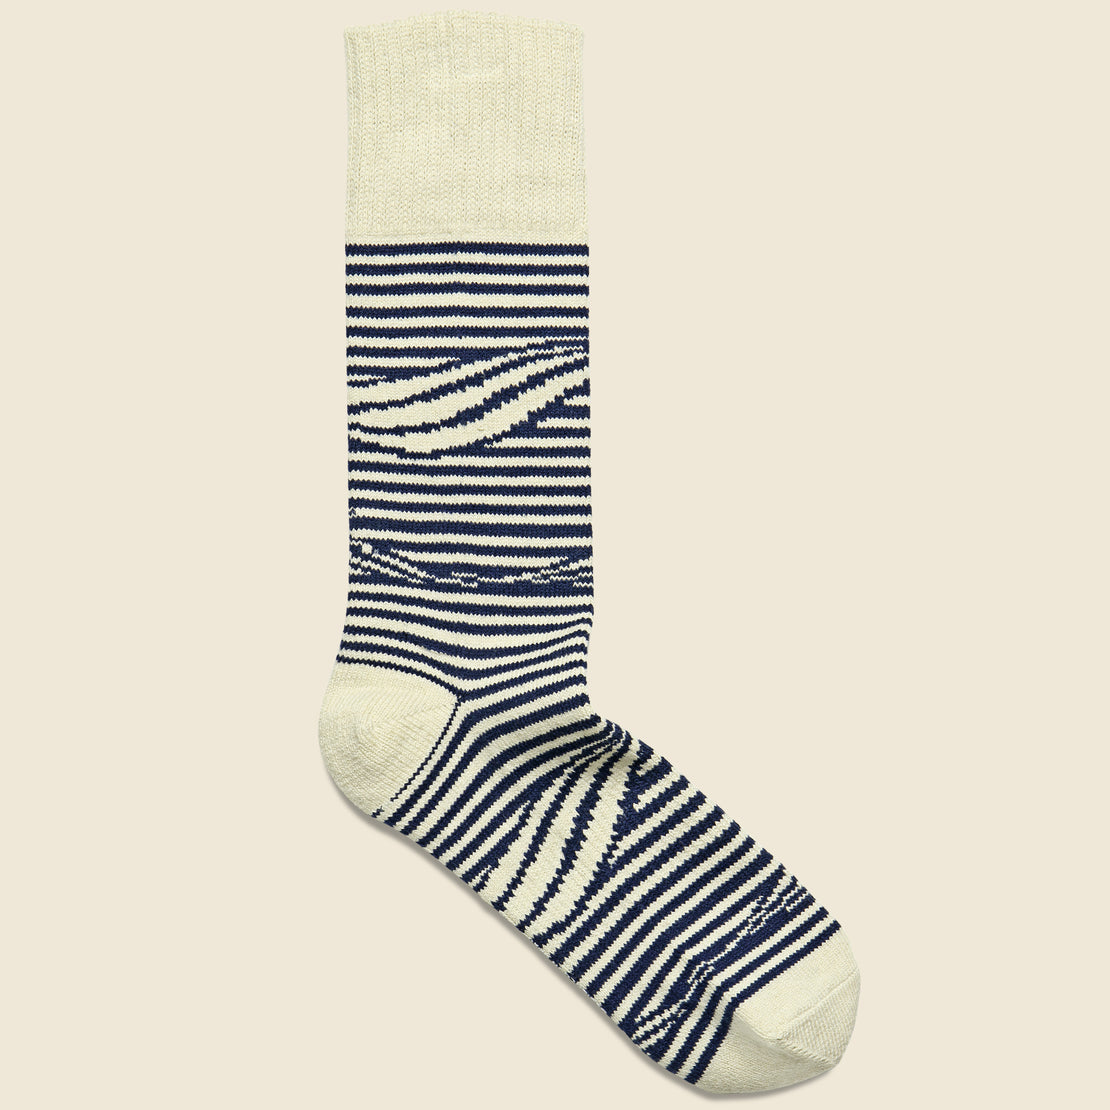 Richer Poorer Crush Crew Sock - Navy/White